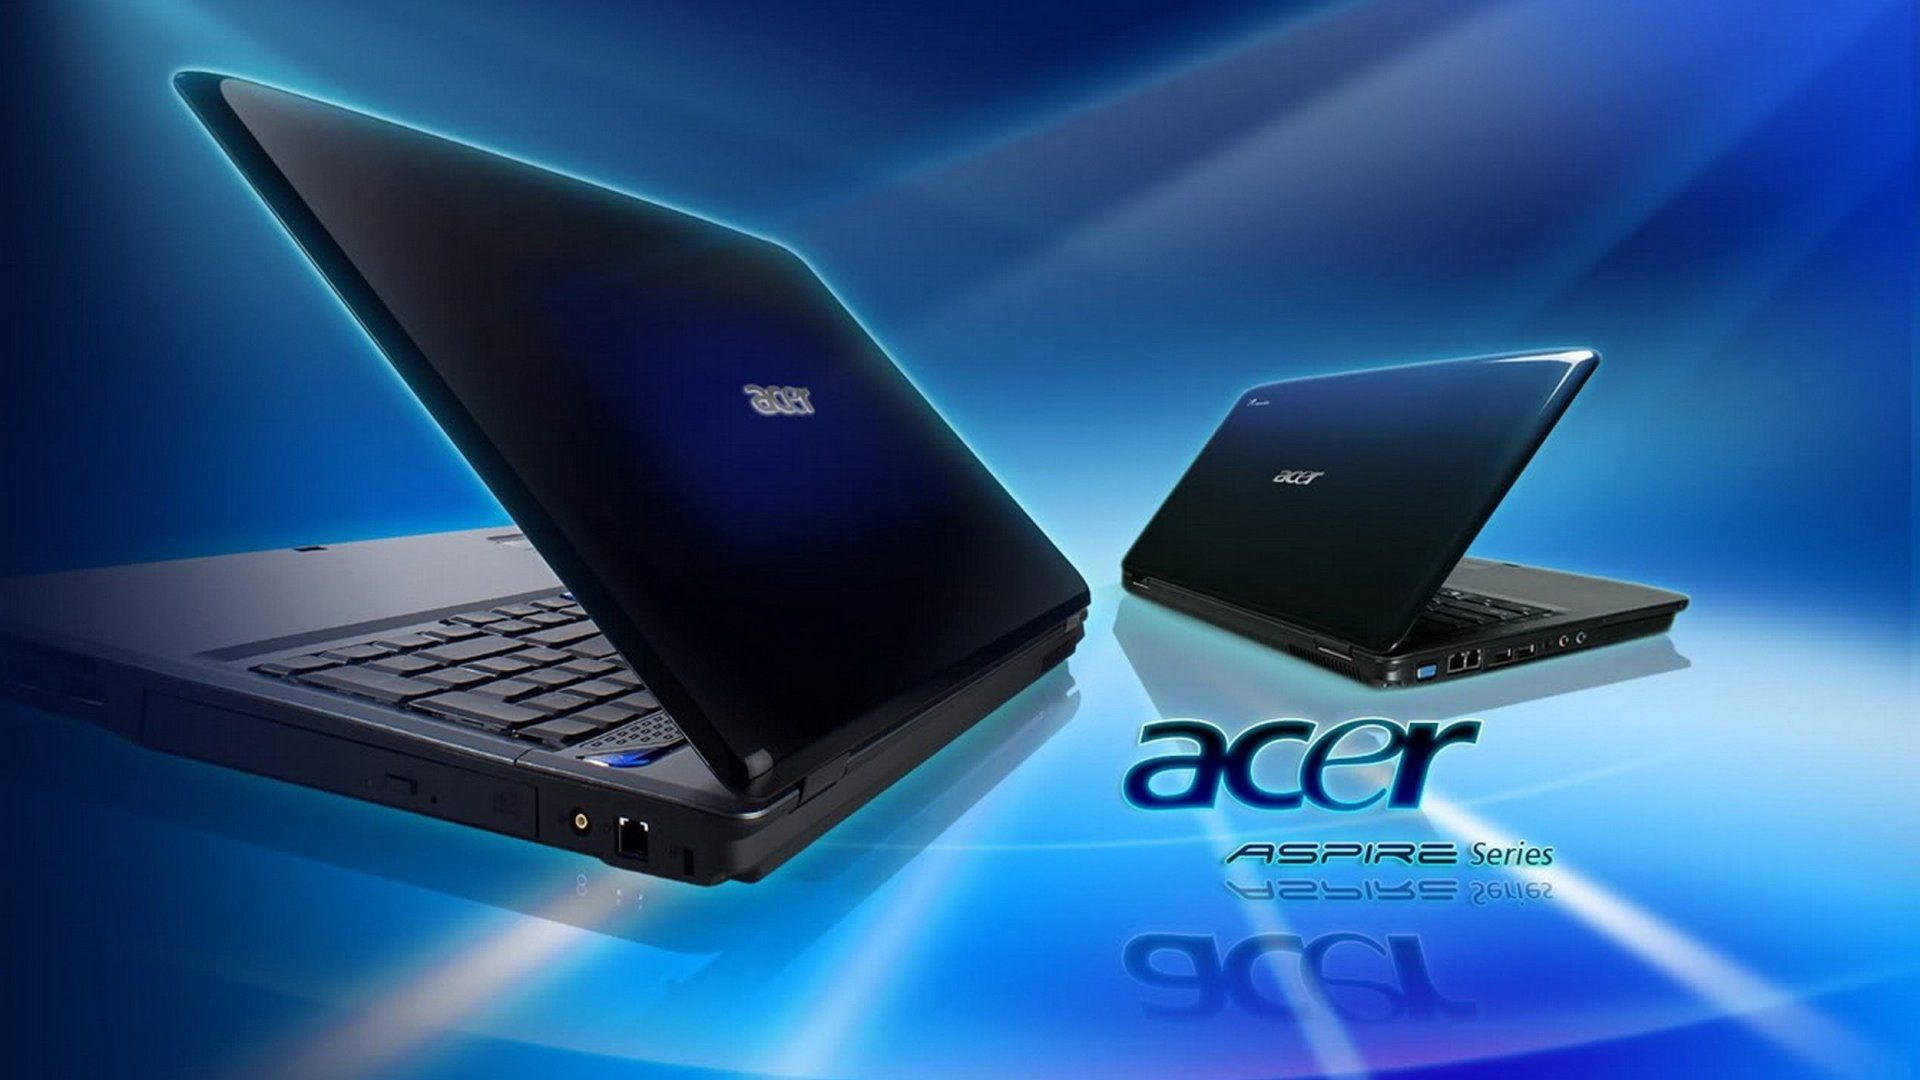 Laptop Acer Aspire 7736